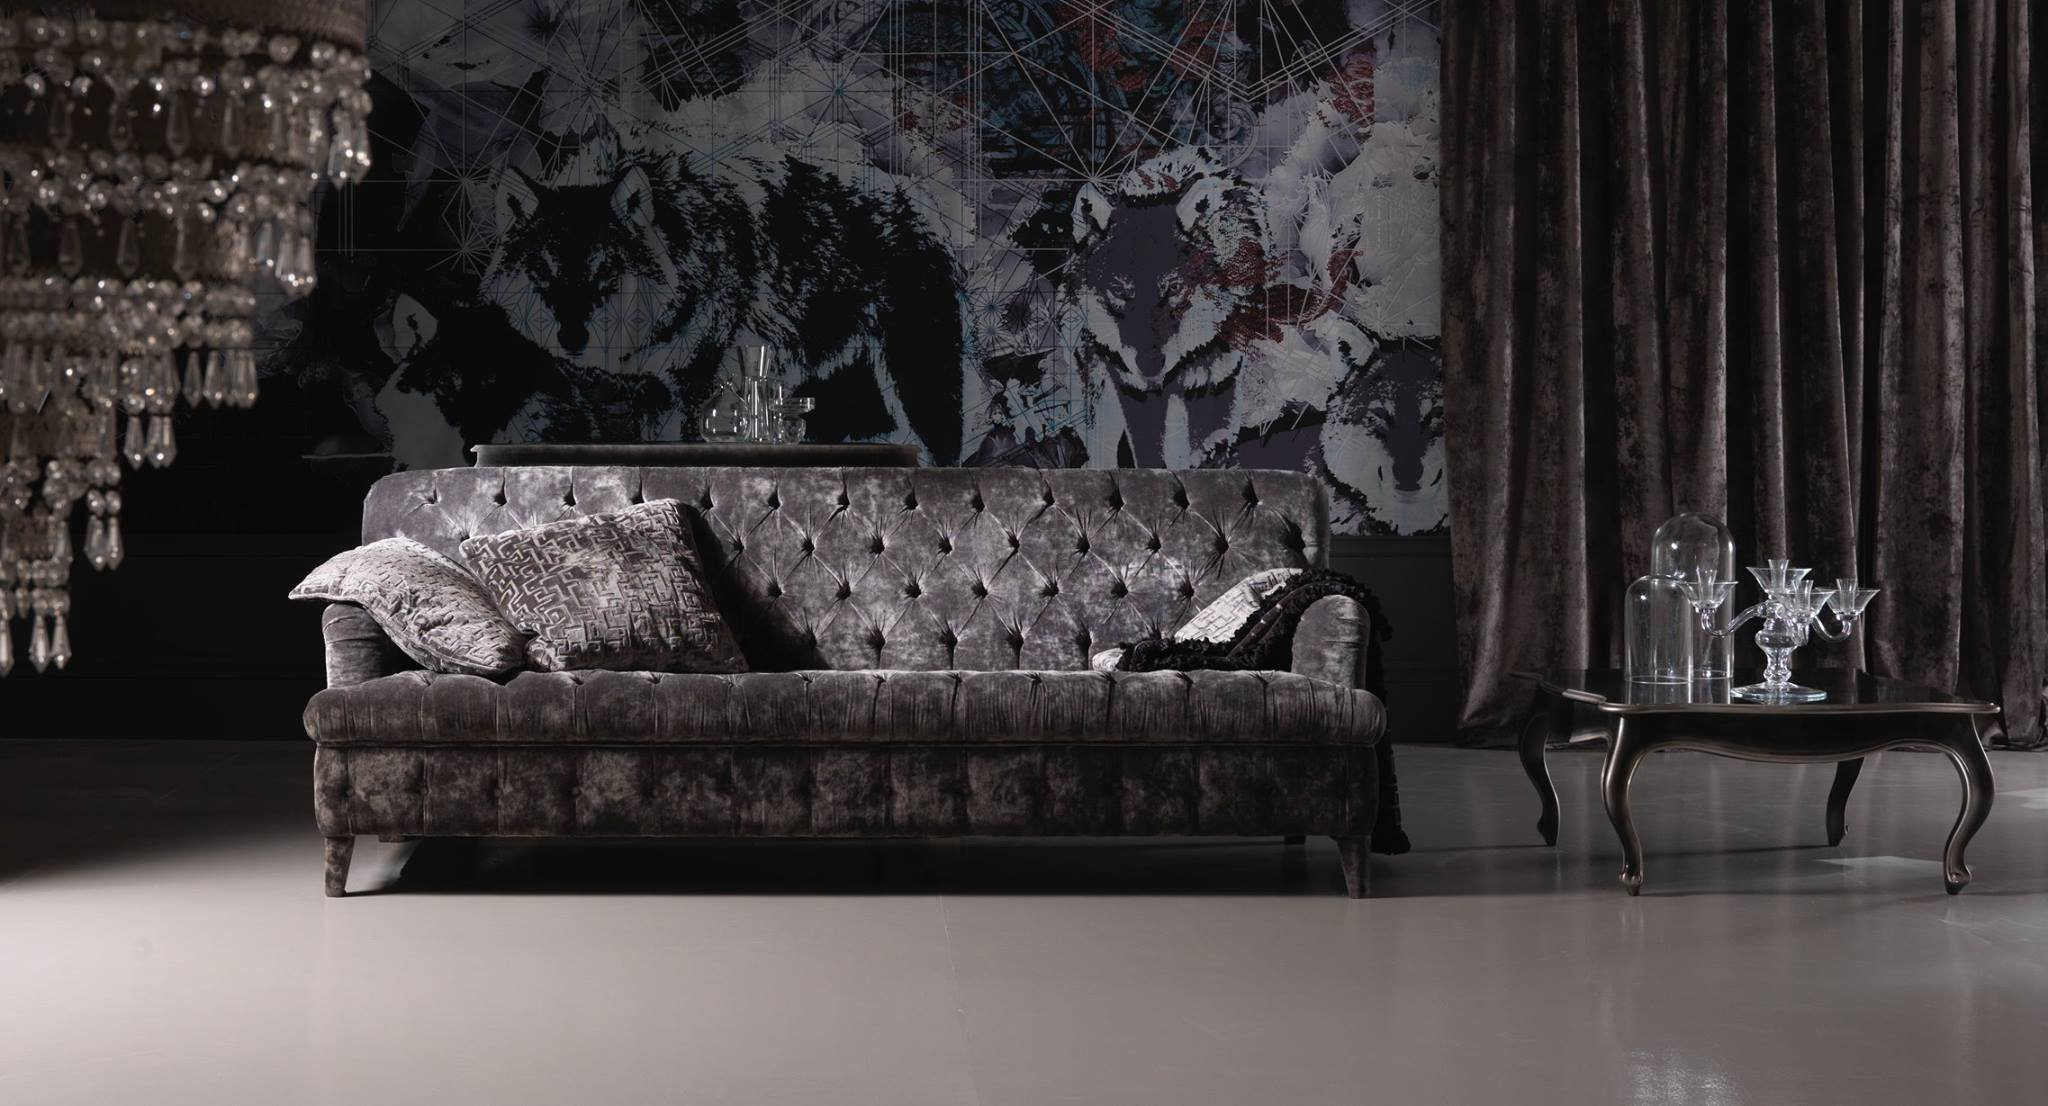 veracchi_mobili_italian_furniture_luxury_sofa_velvet_grey